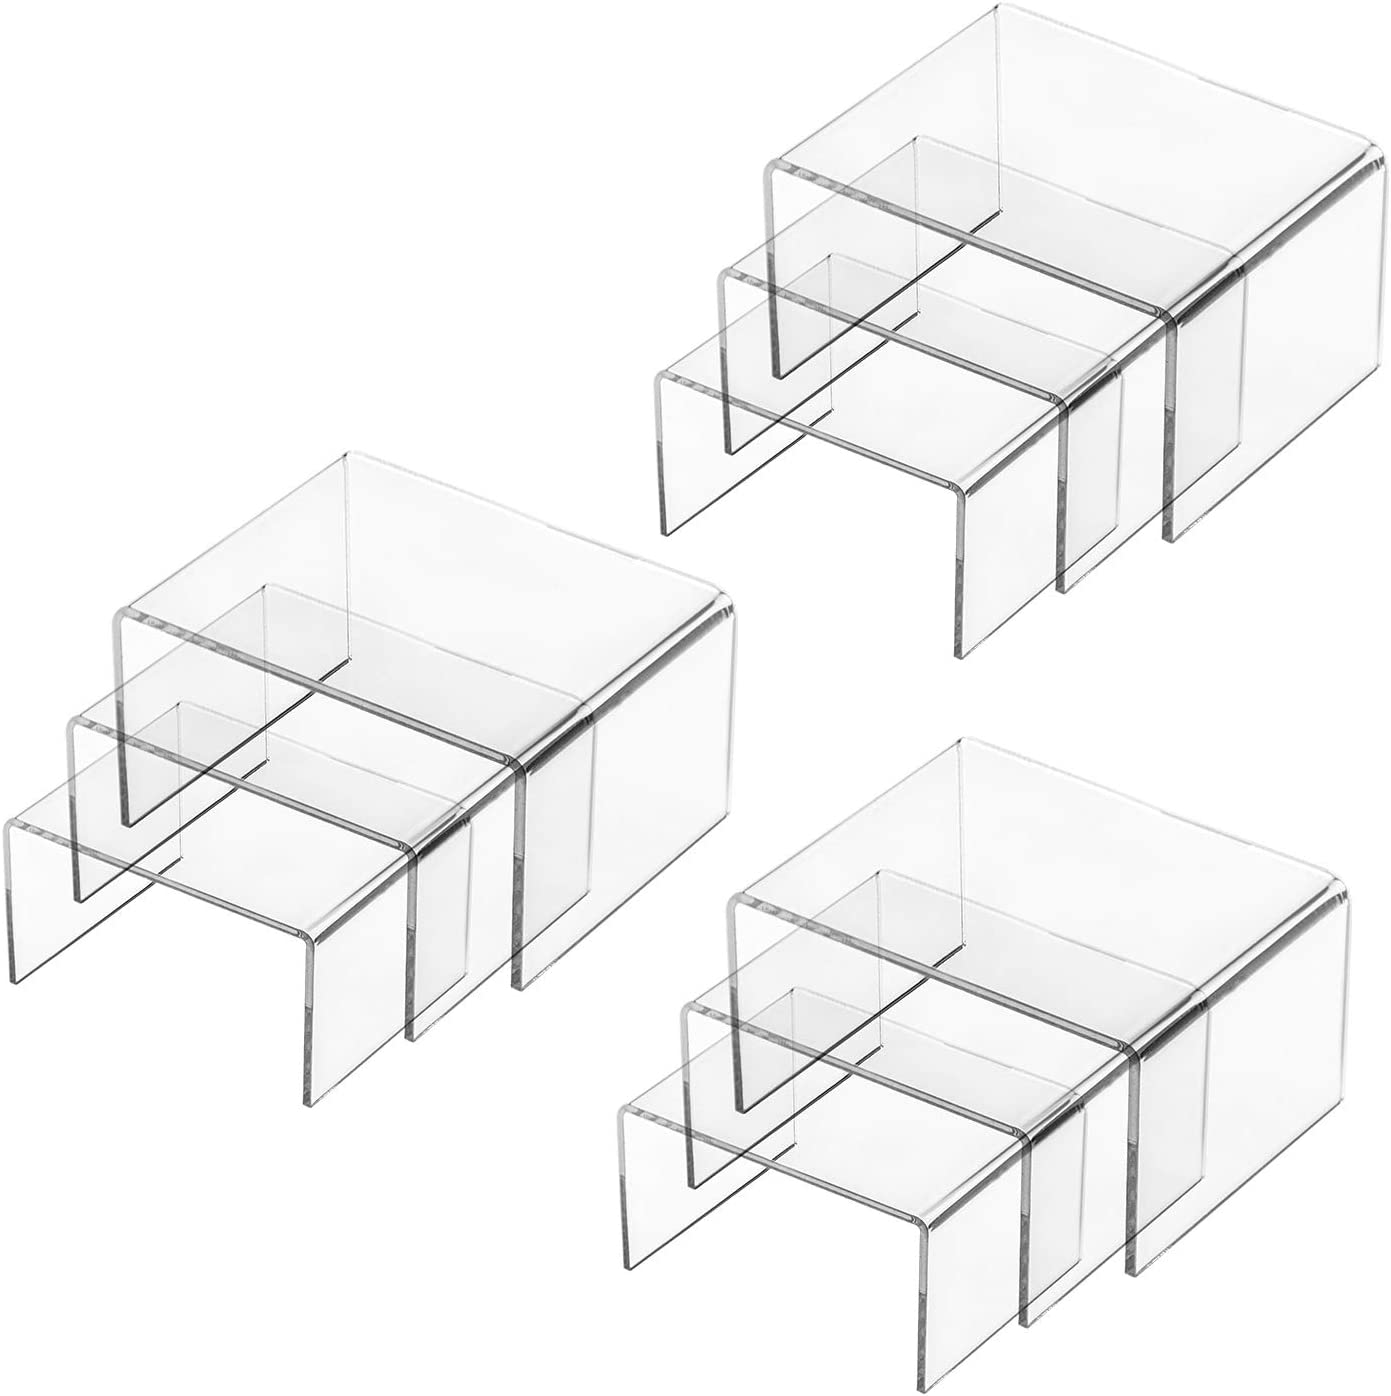 Hedume Set of 9 Clear Acrylic Display Risers for Figures, Buffets, Cupcakes and Jewelry Display Stands